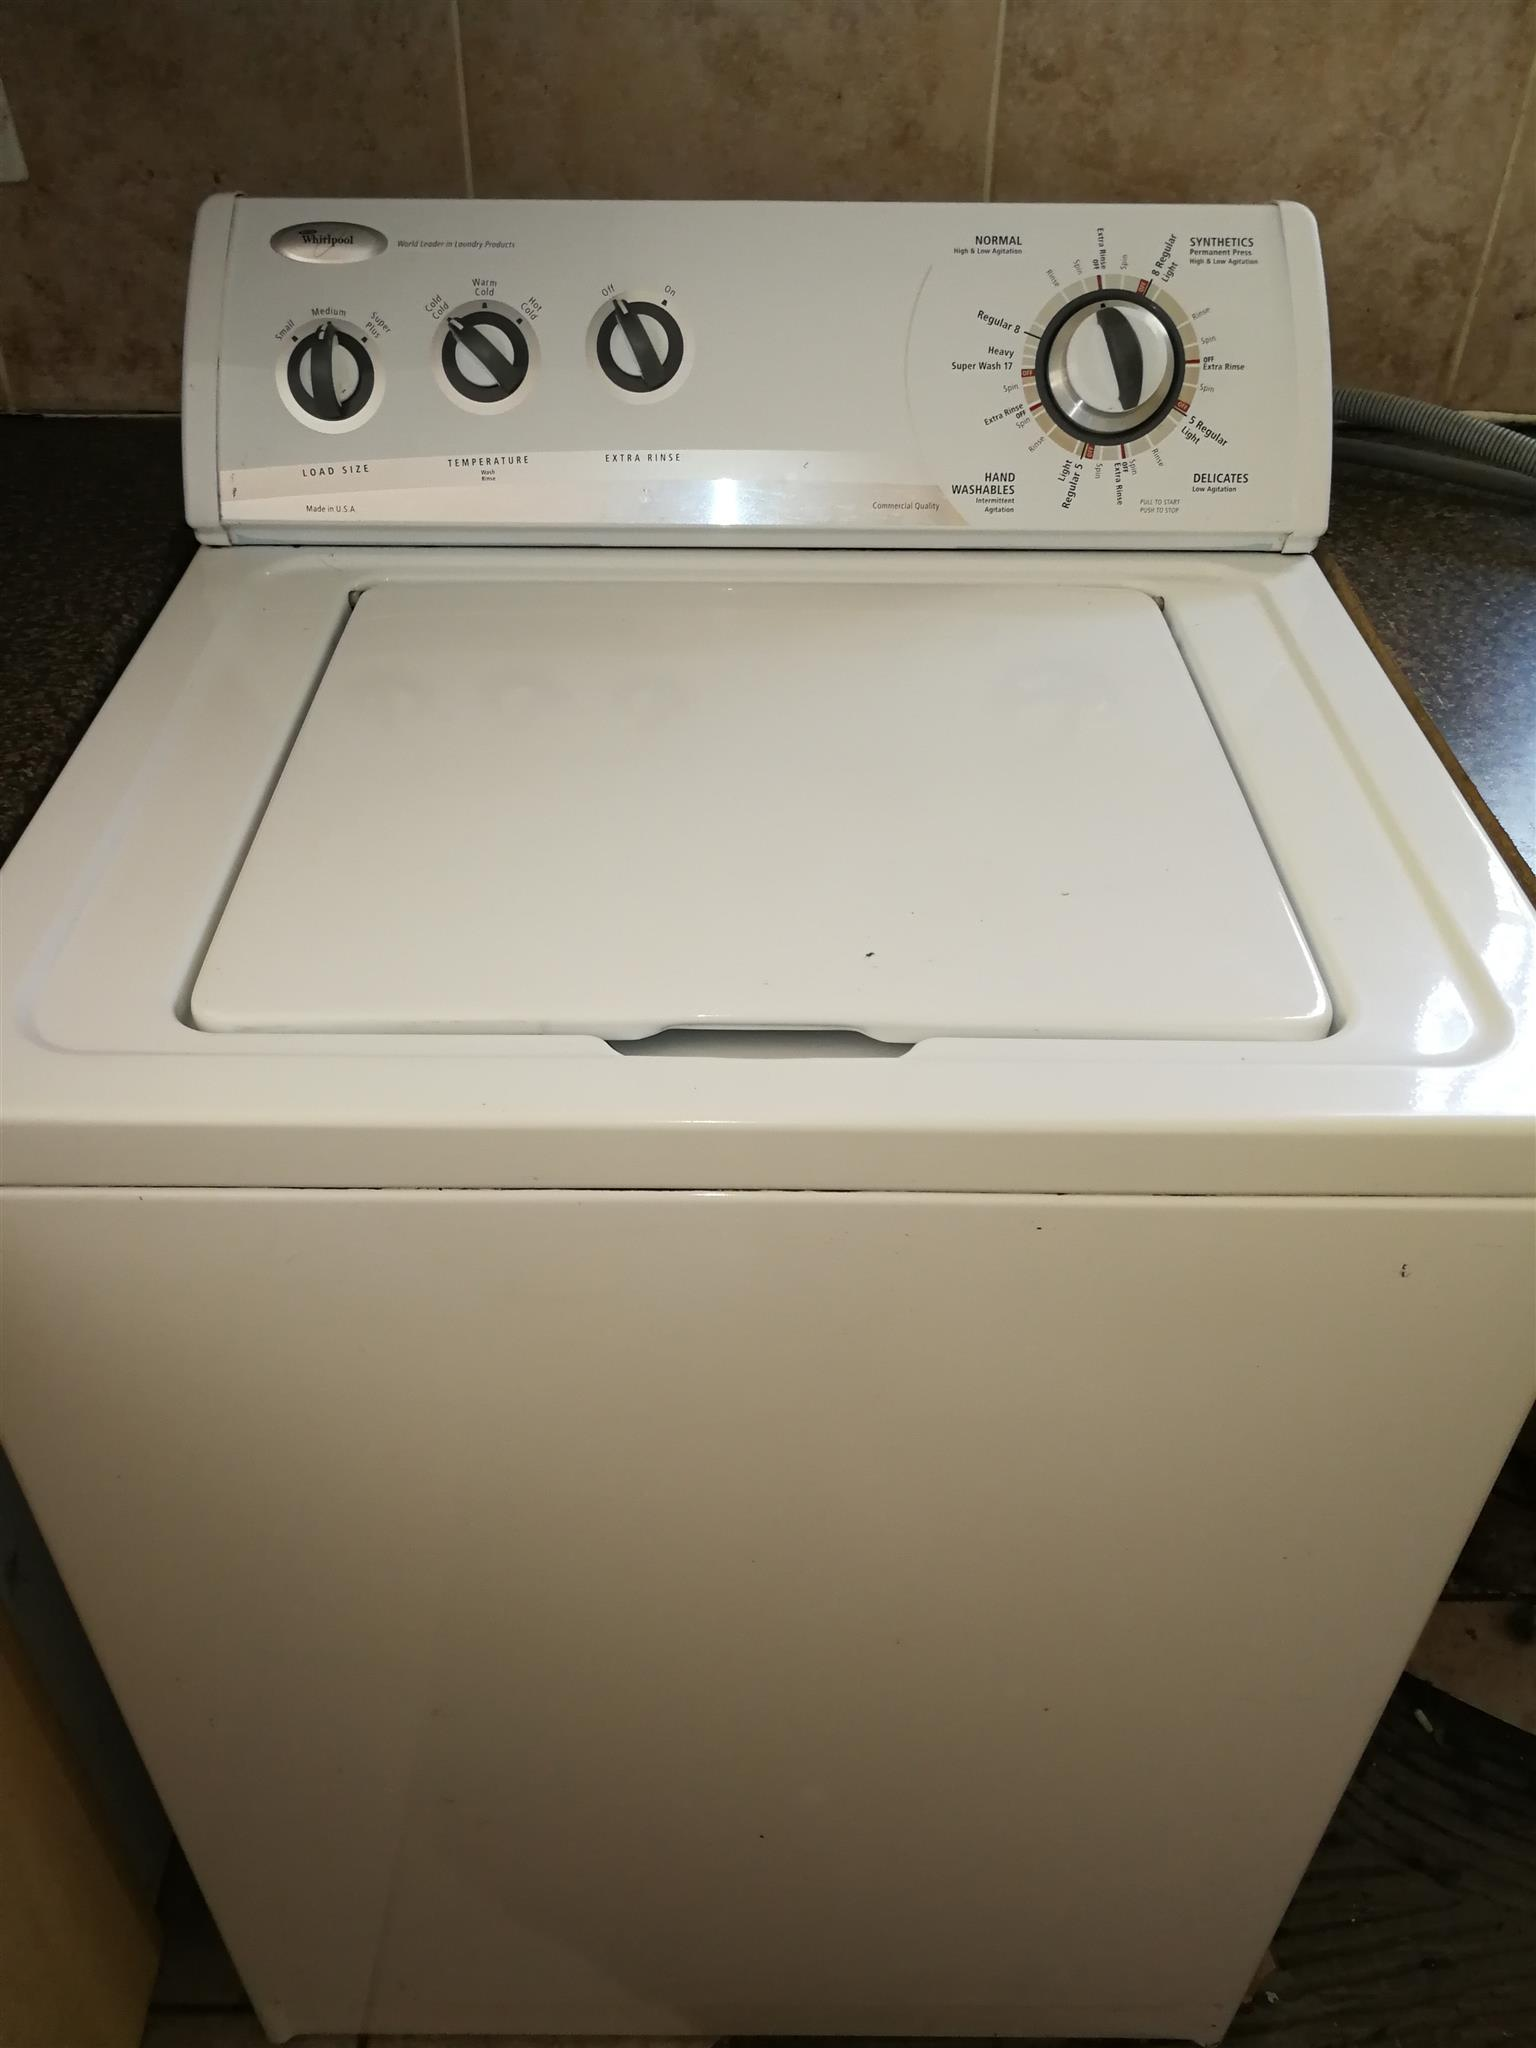 Whirlpool 13 kg top loader